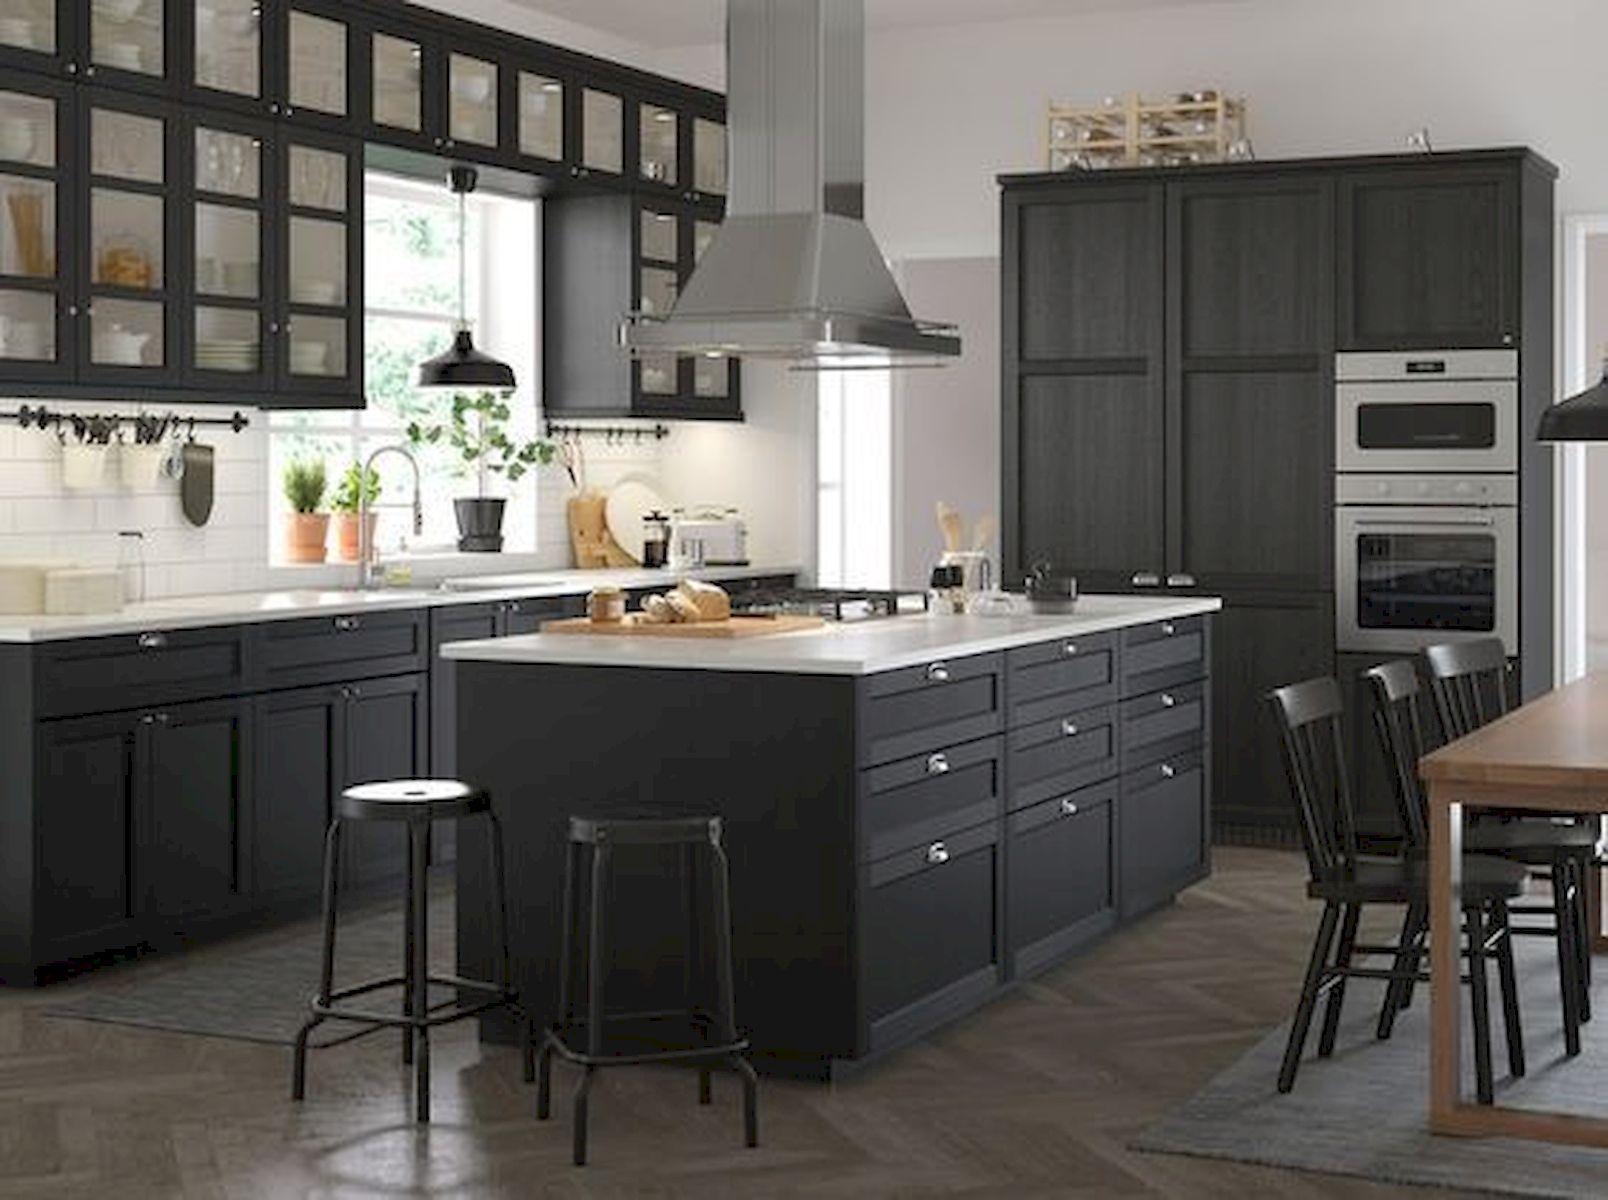 30 Amazing Black Kitchen Ideas You Will Love Ikea Kitchen Inspiration Black Ikea Kitchen Kitchen Design